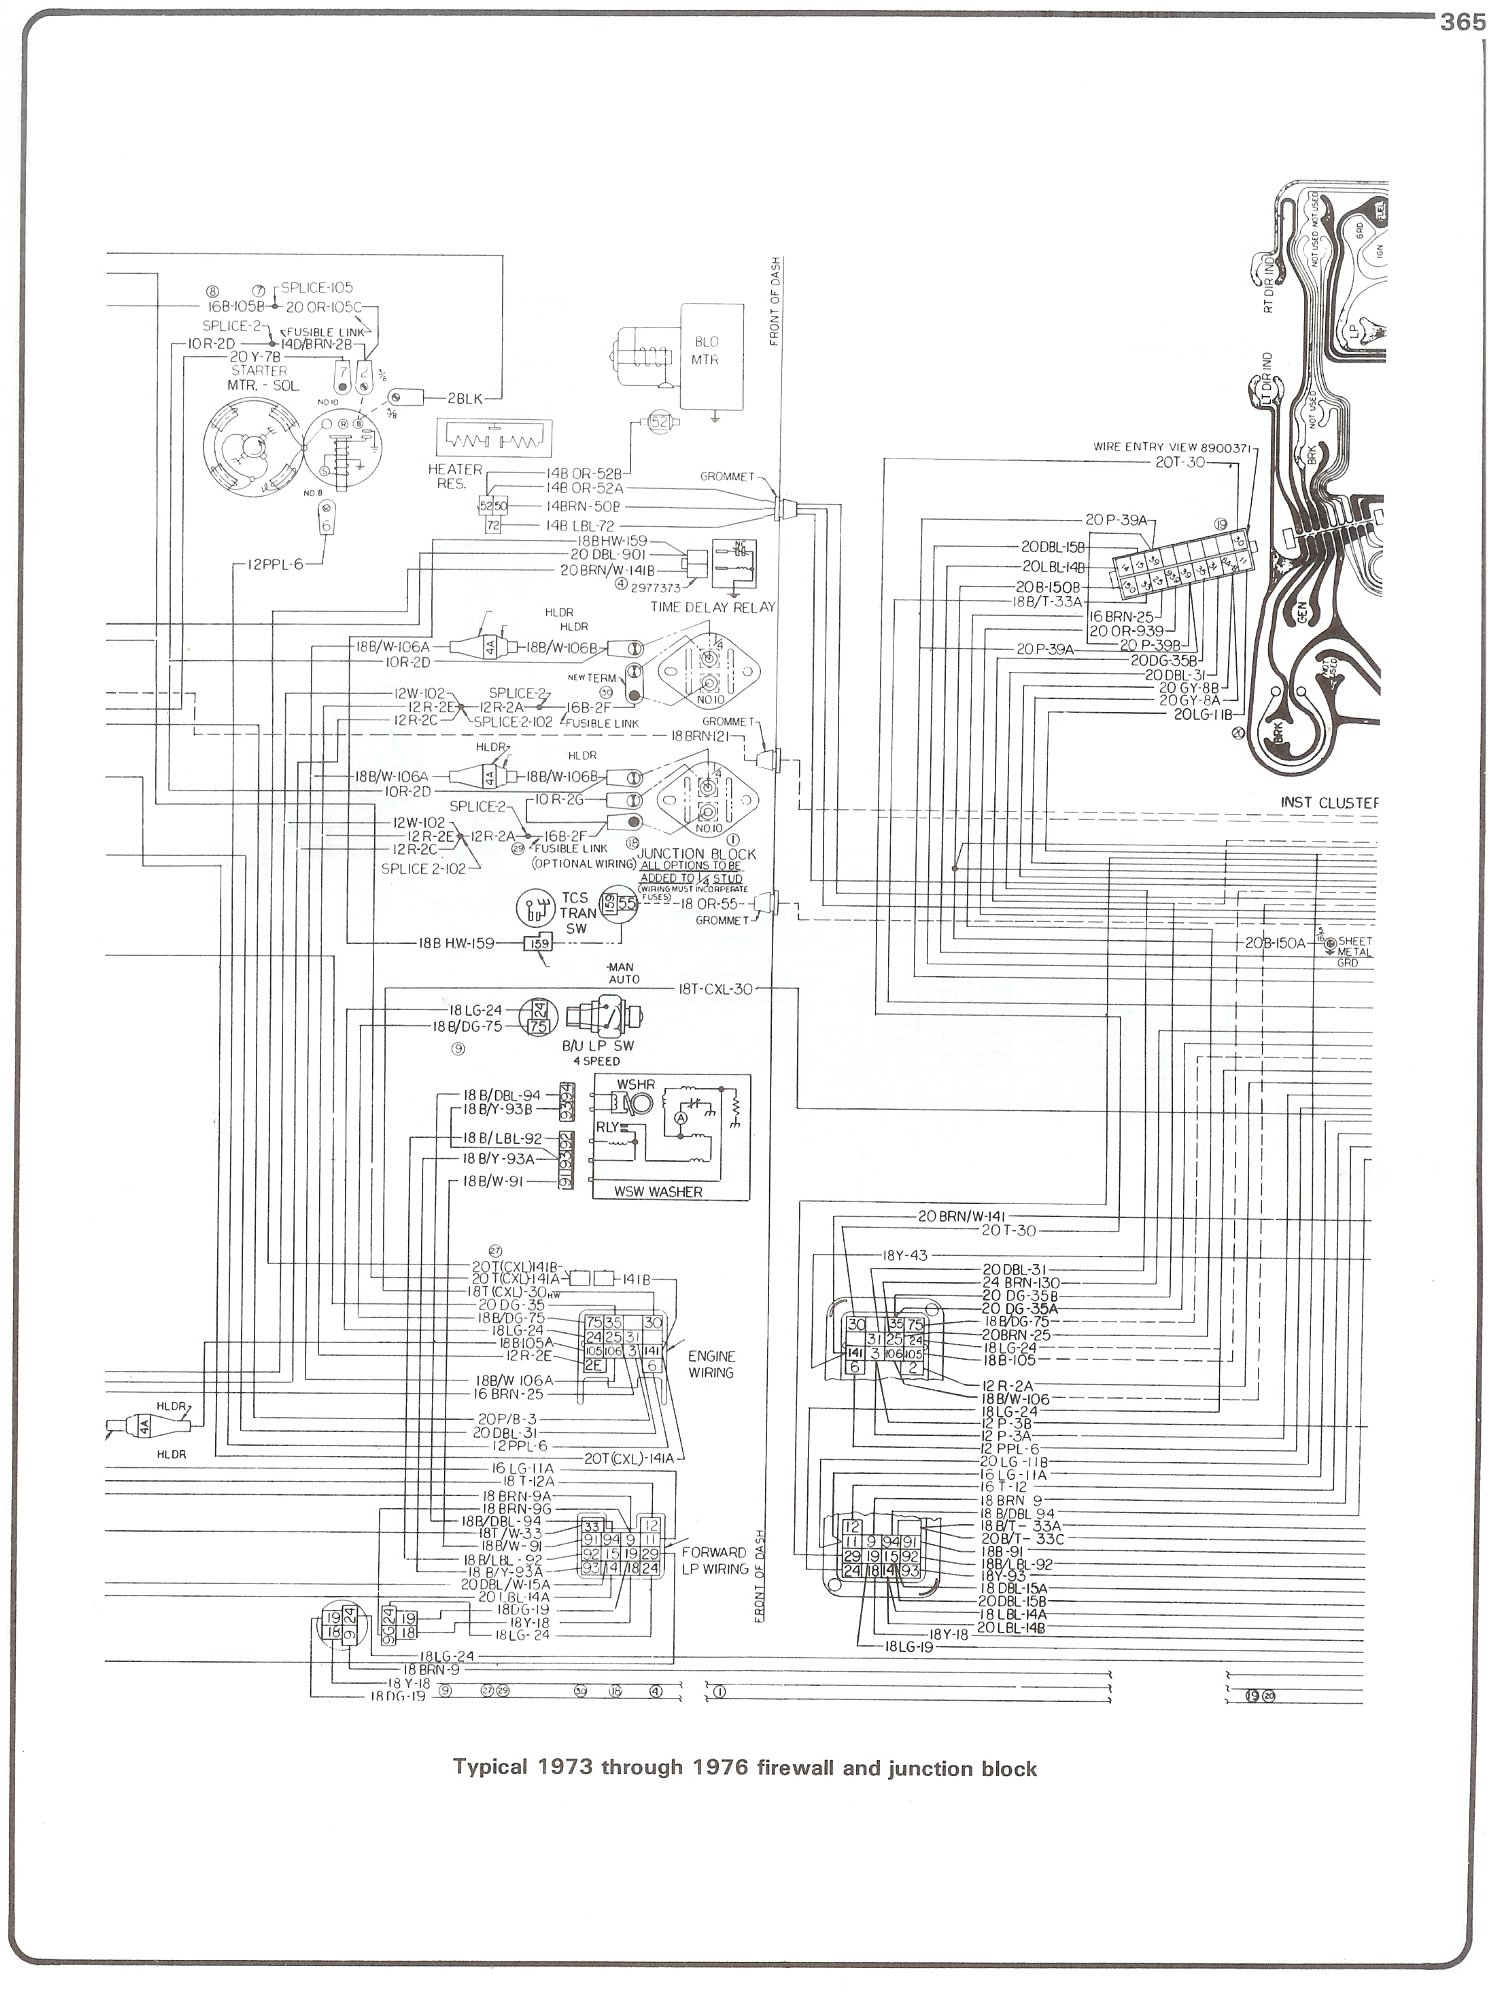 1985 Chevrolet K 5 Engine Diagram